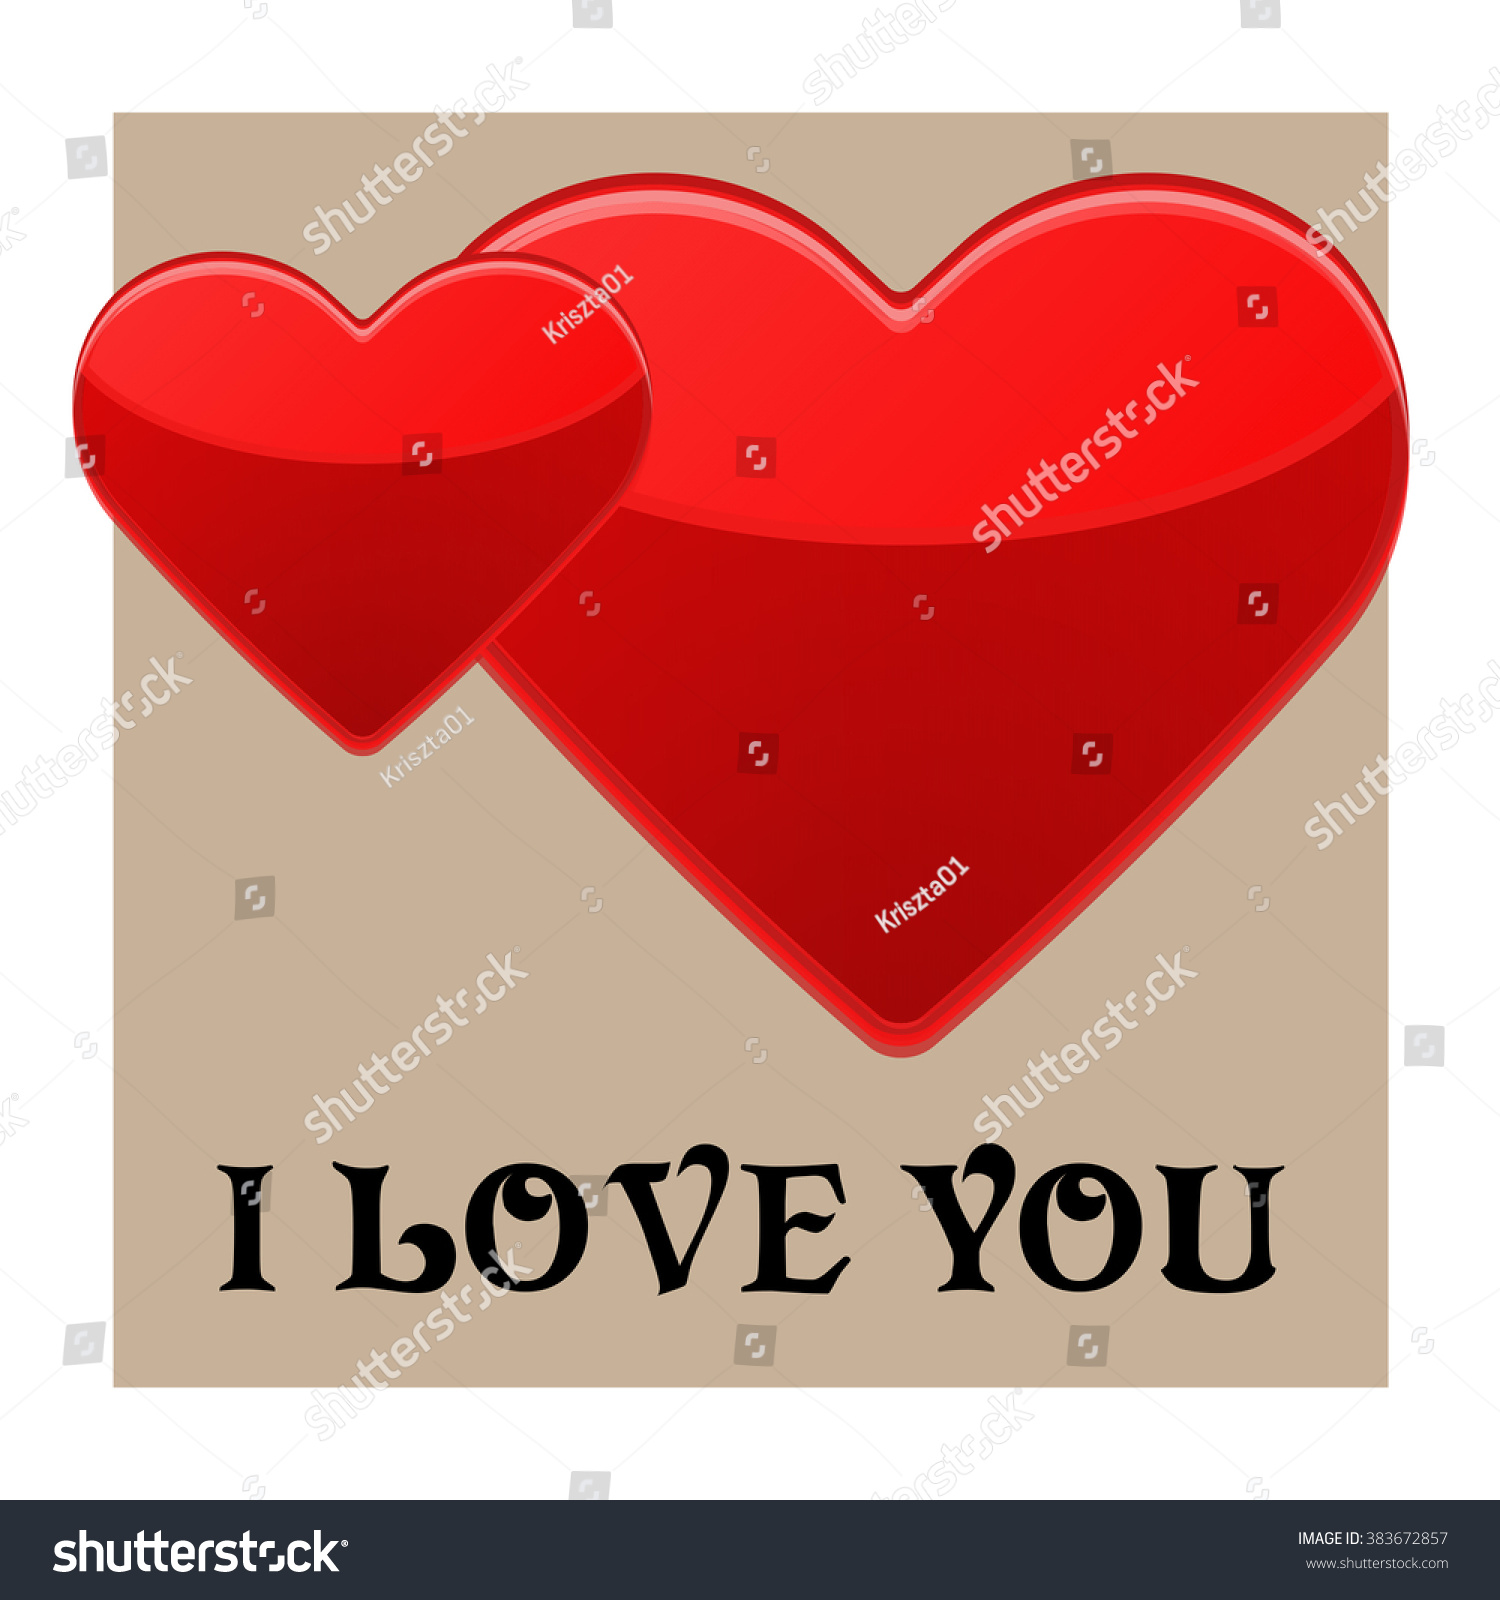 Love You Subtitle Symbol Love Pairs Stock Vector Royalty Free